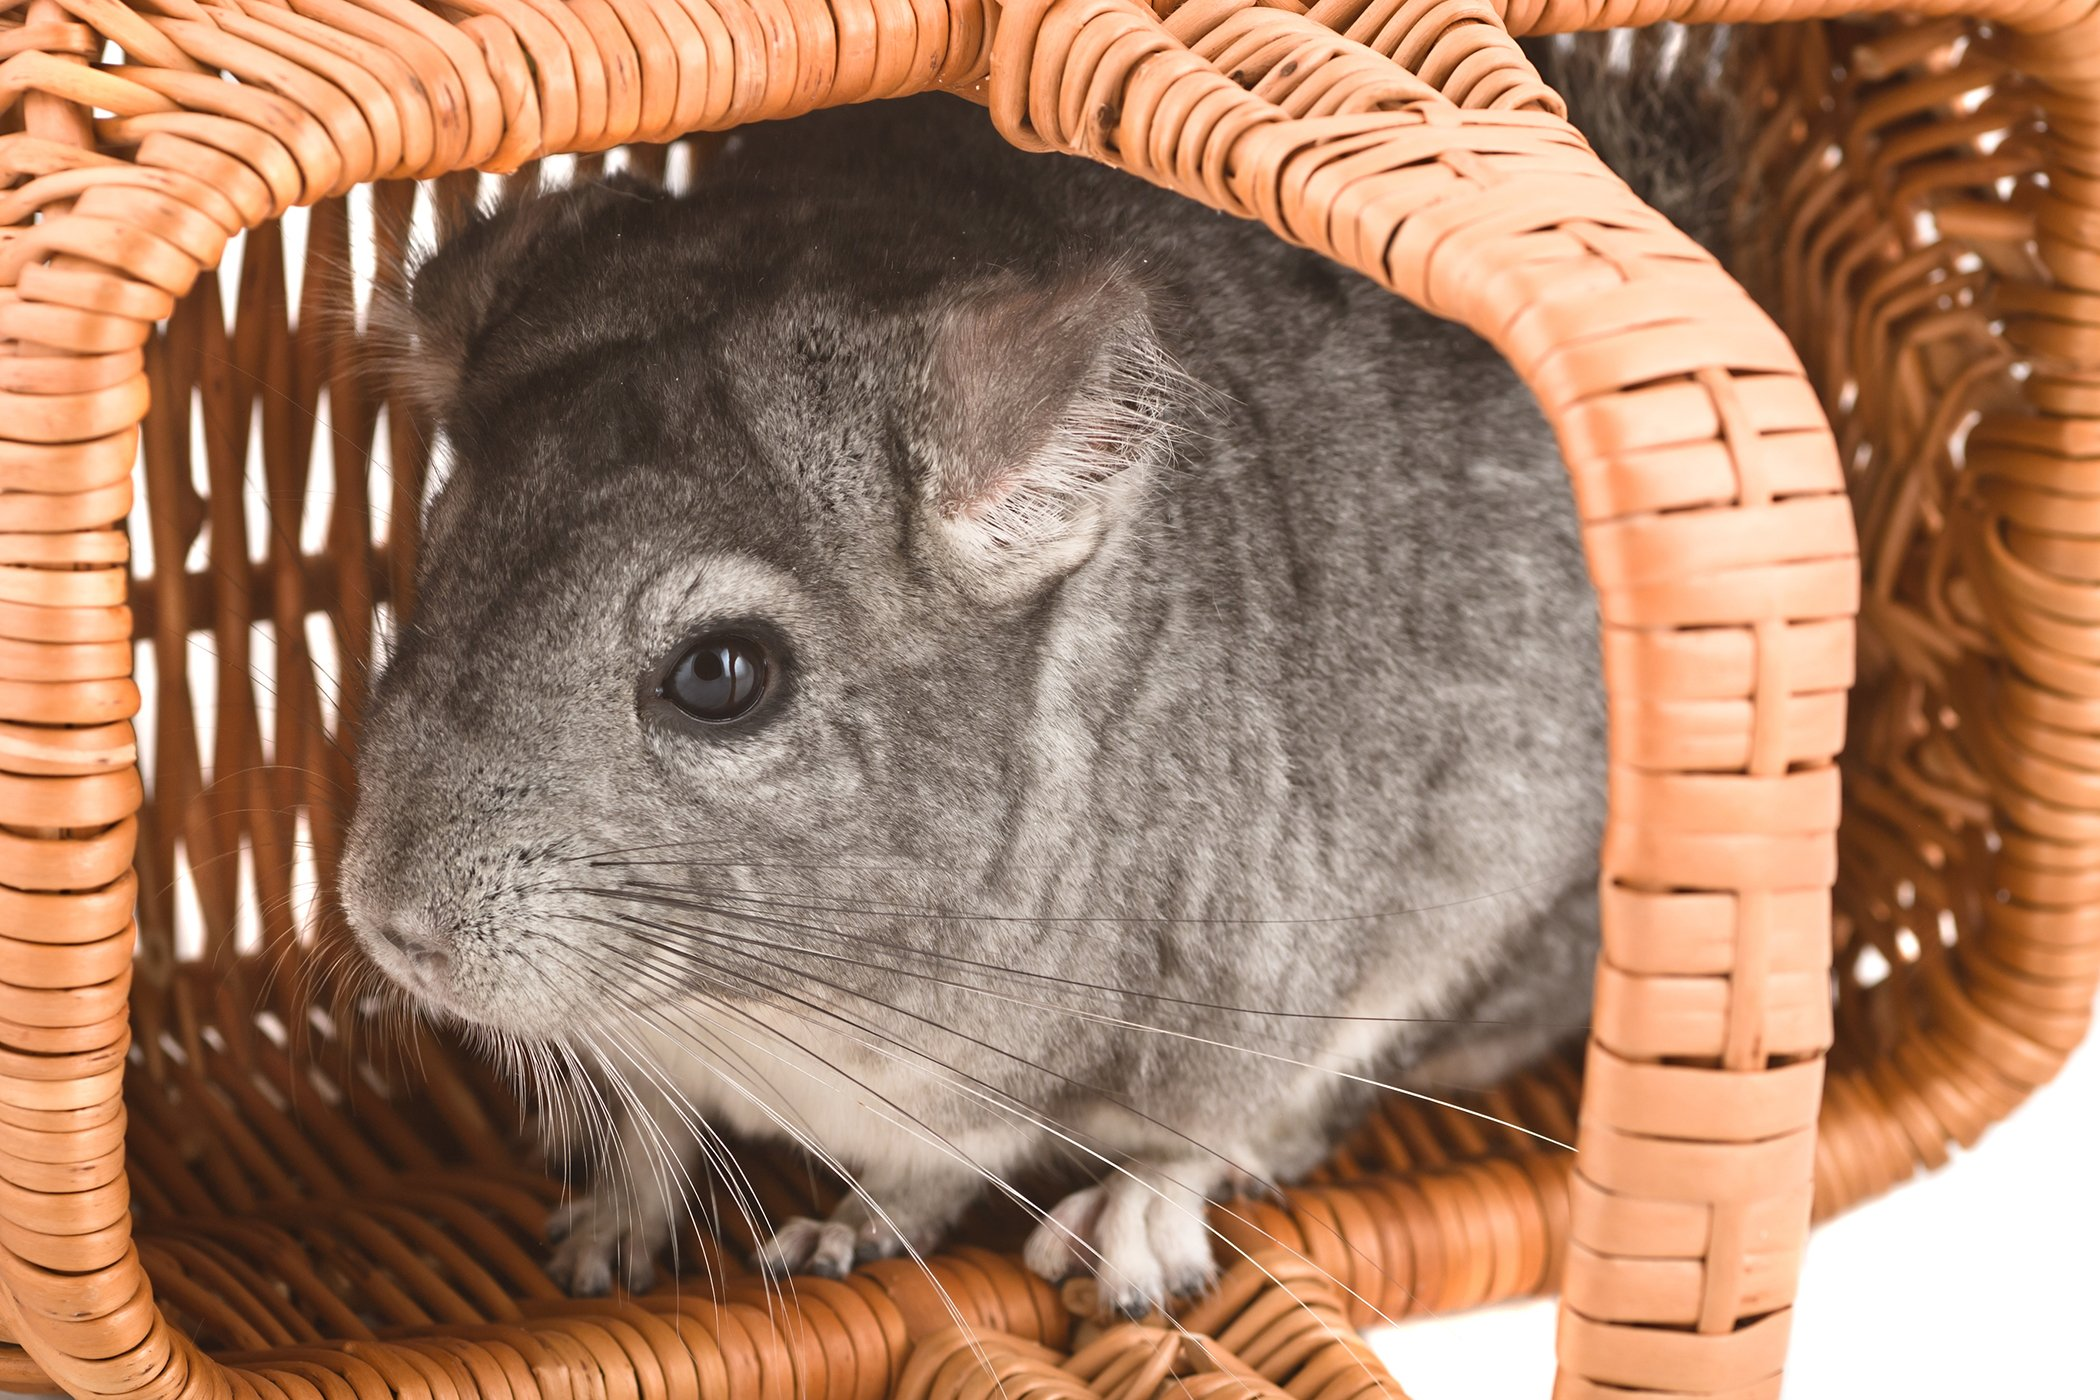 Bone Fractures in Chinchillas - Symptoms, Causes, Diagnosis, Treatment, Recovery, Management, Cost